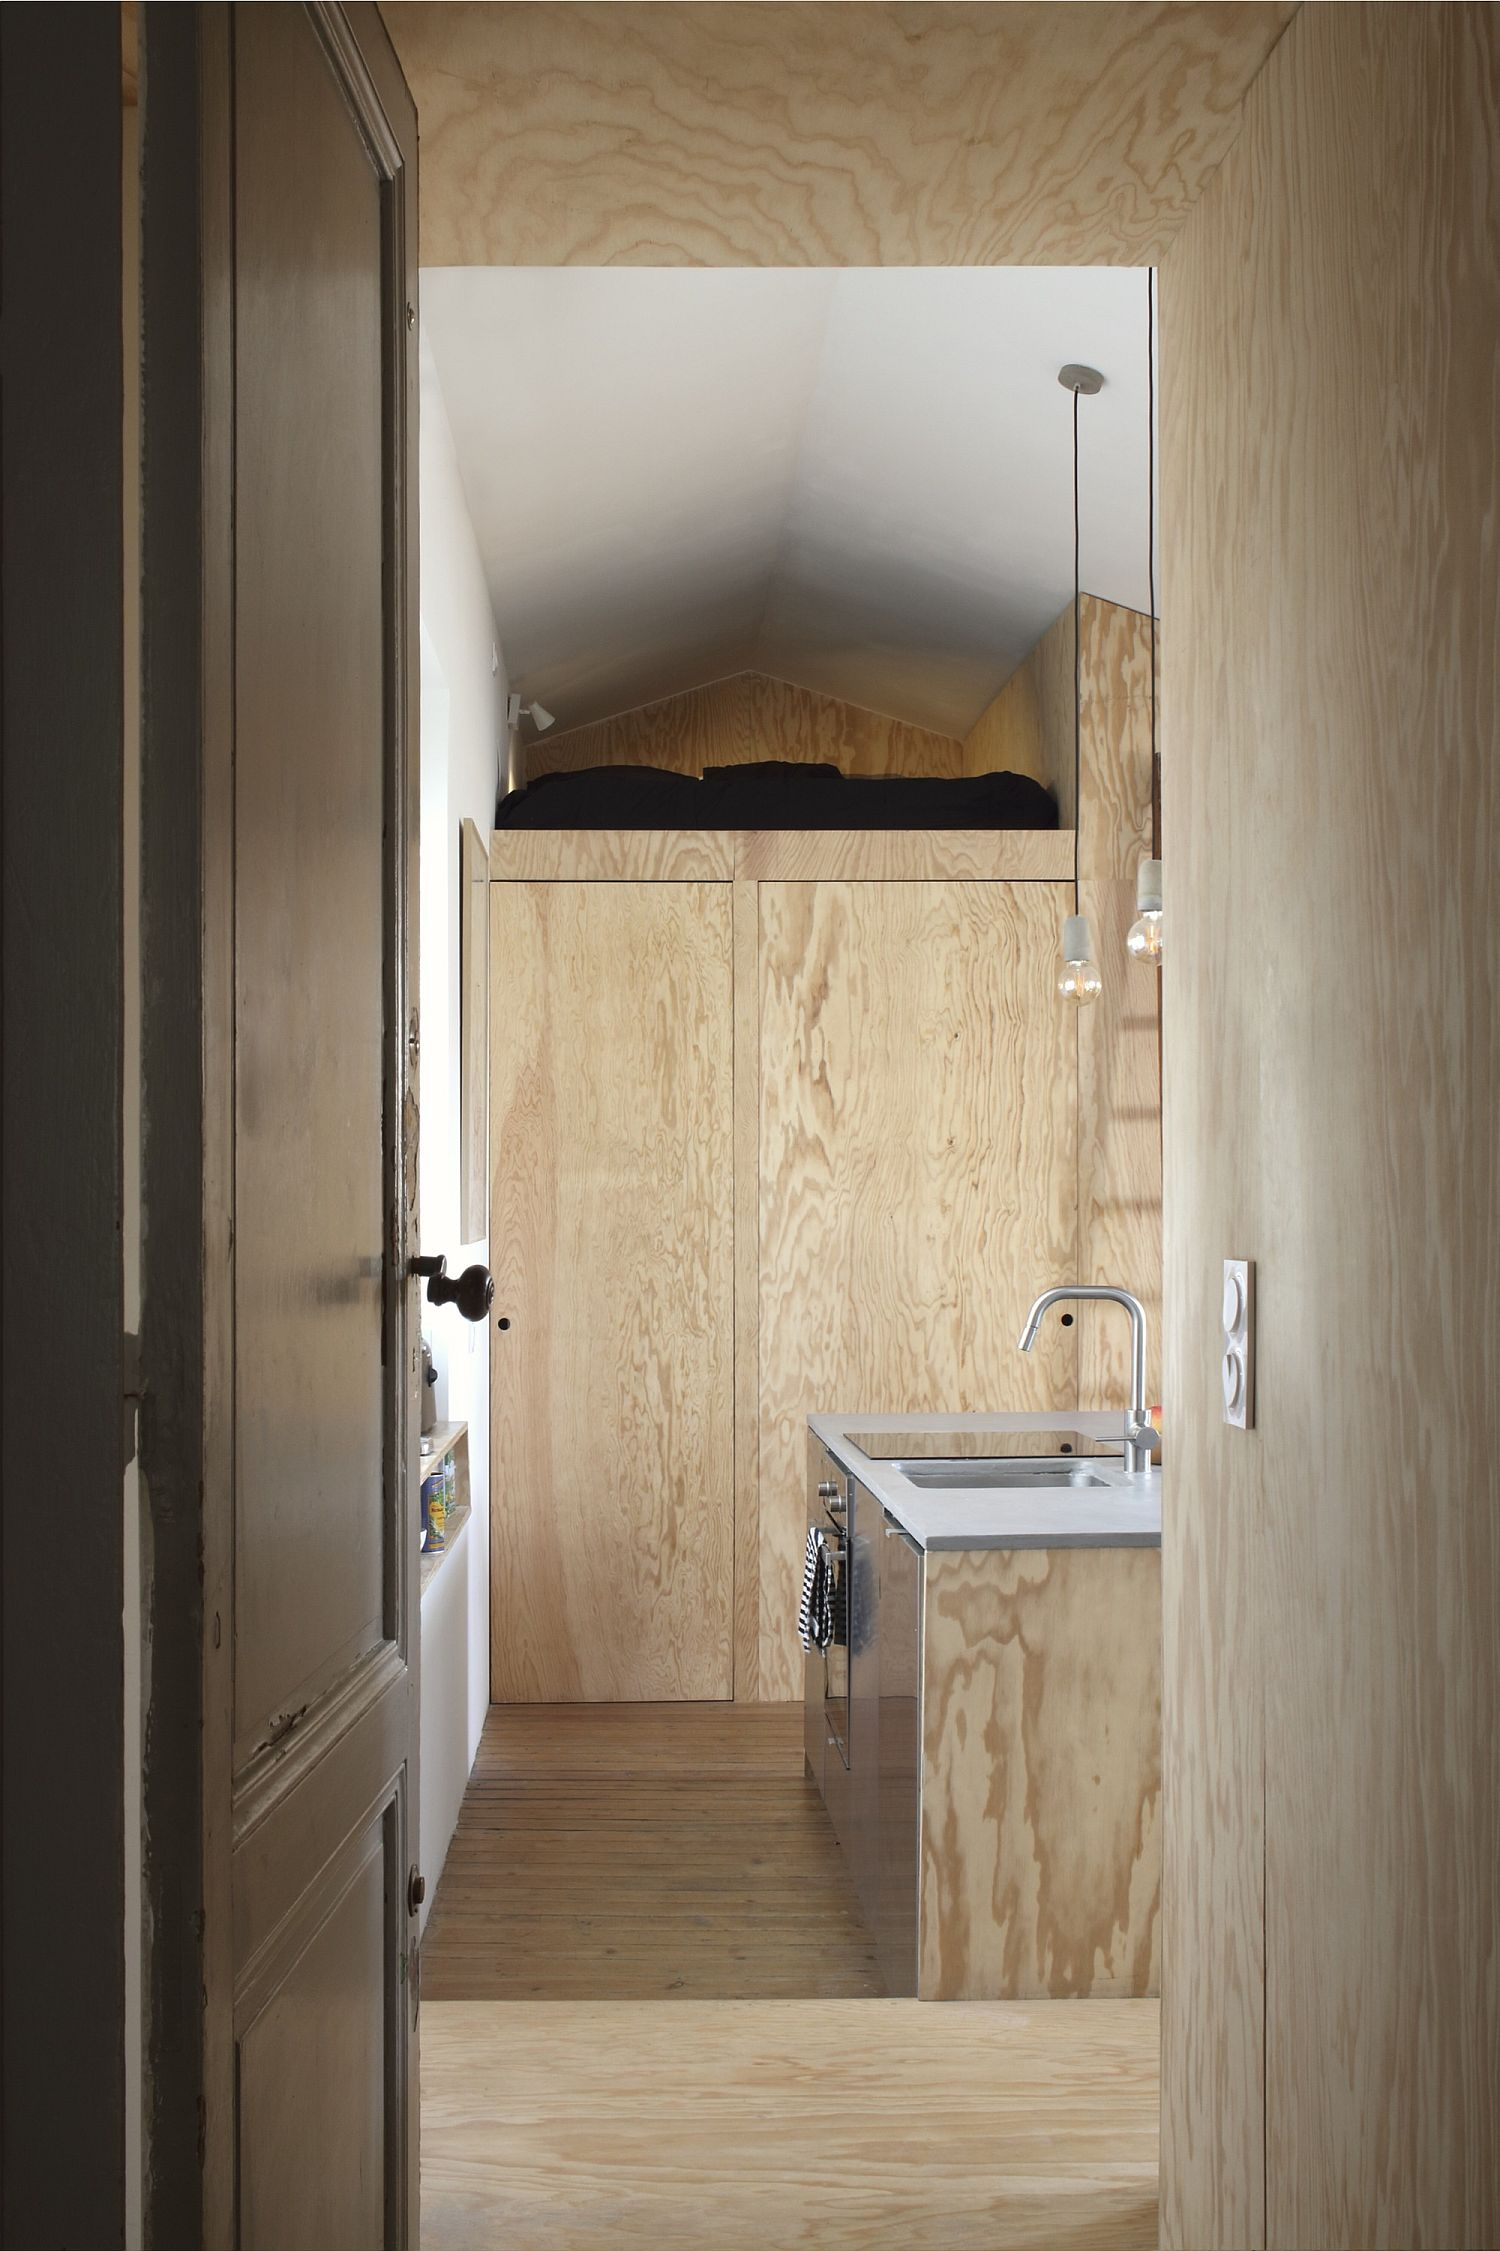 Wooden walls and custom units create ample storage inside the apartment